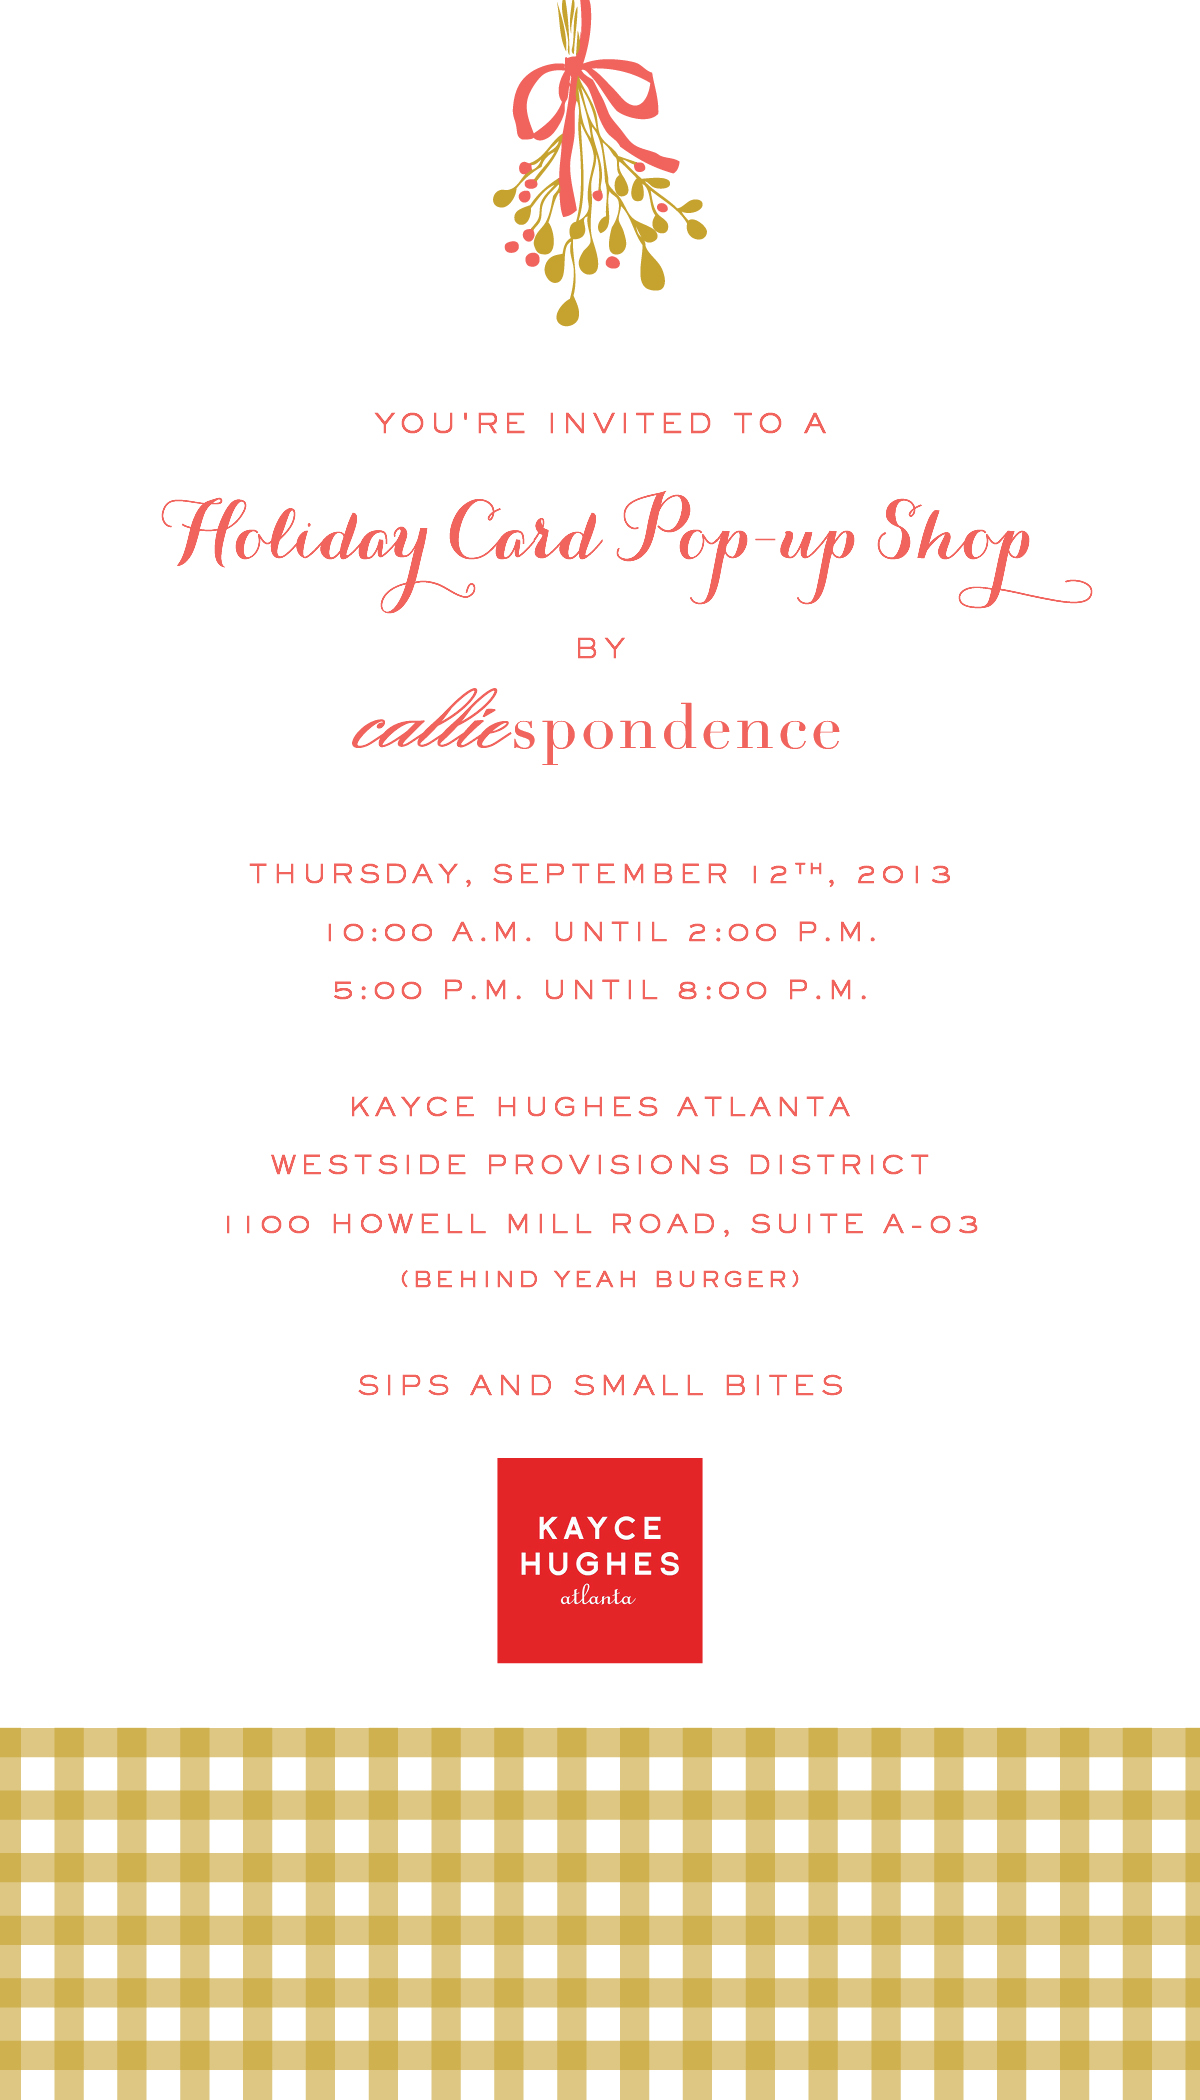 Holiday Card Pop Up Shop Thursday September 12th Calliespondence